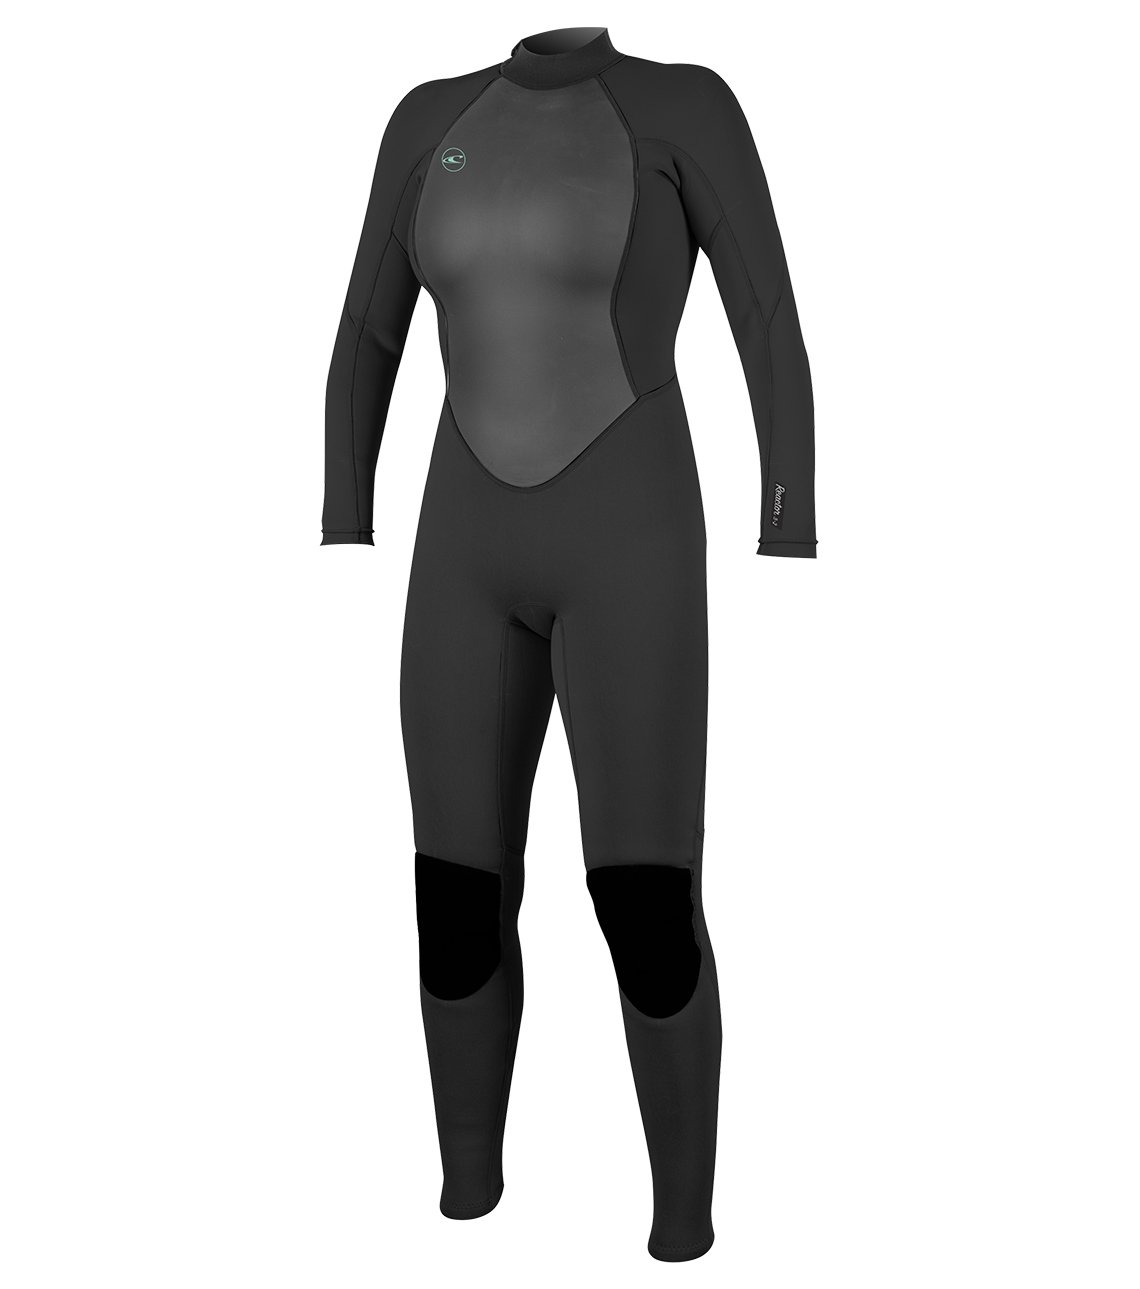 O'Neill Women's Reactor-2 3/2mm Back Zip Full Wetsuit, Black, 16 by O'Neill Wetsuits